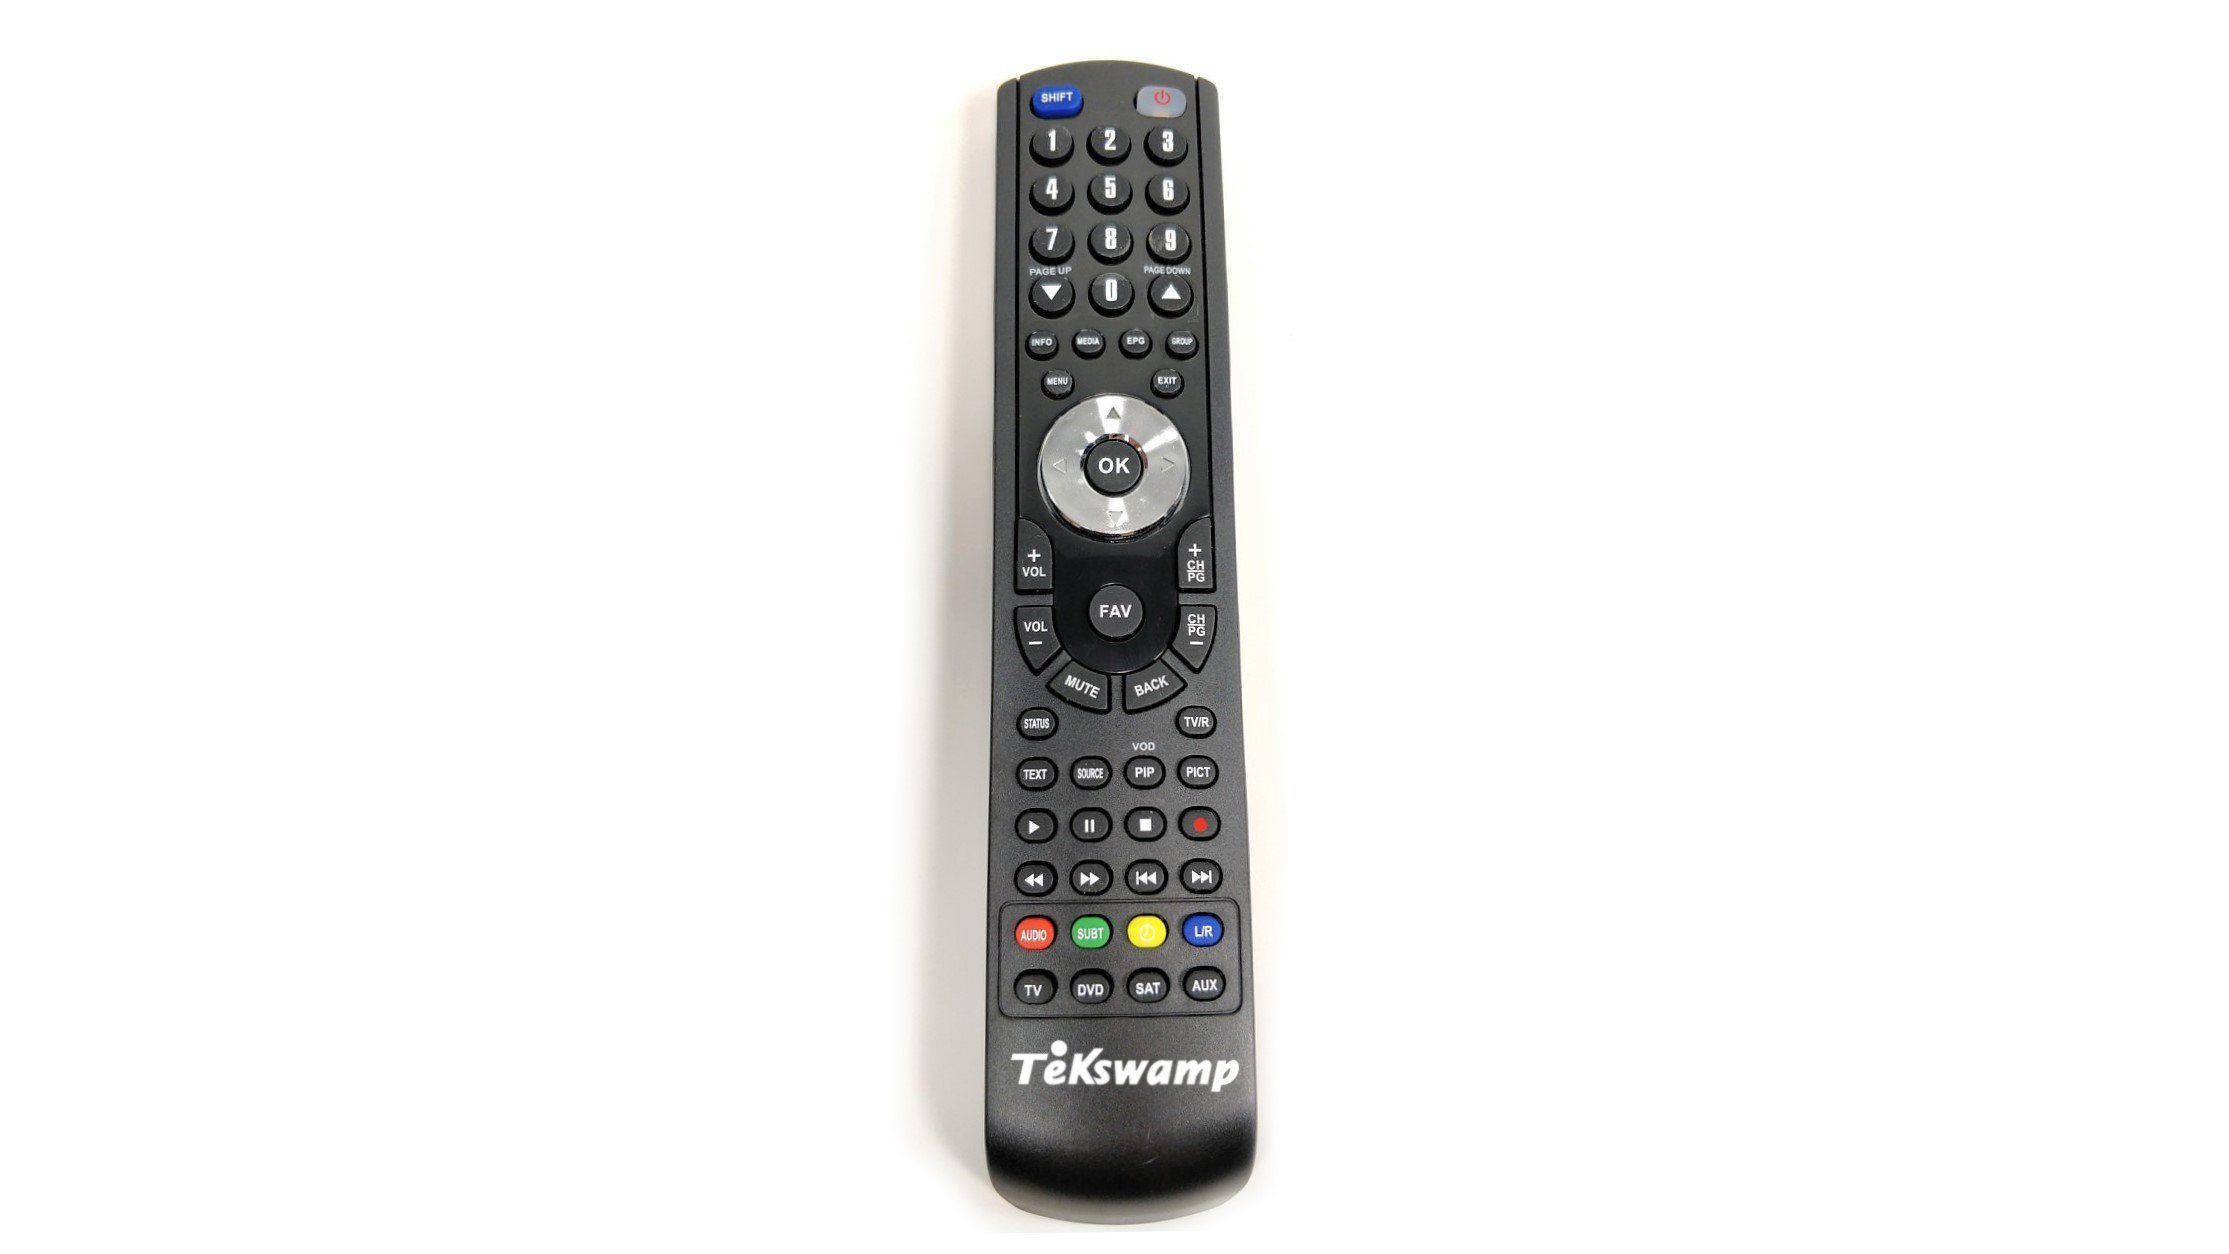 Tekswamp TV Remote Control for Philips 47PFL7403D/F7